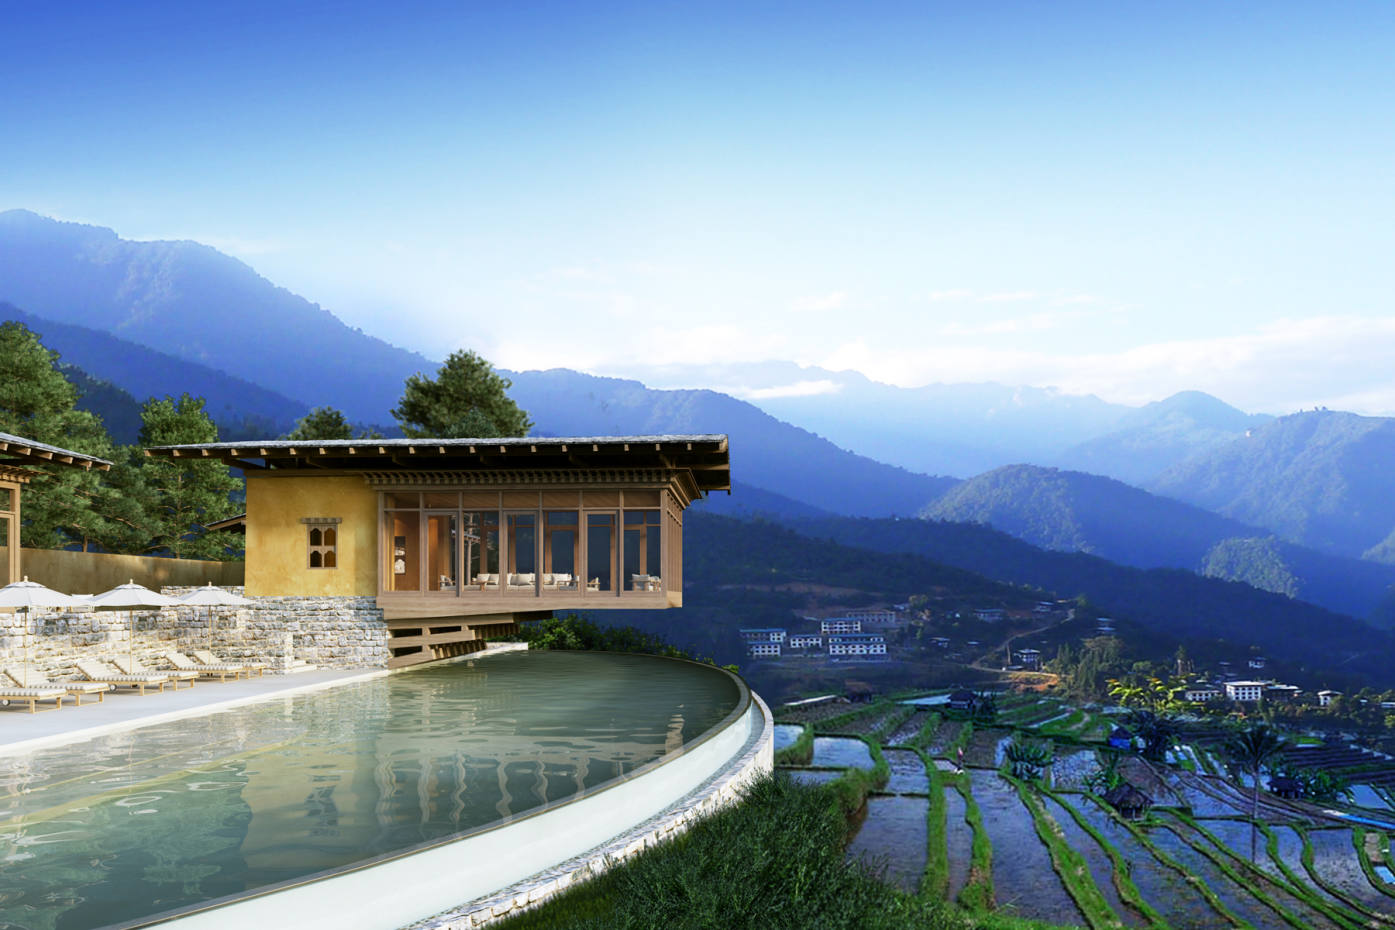 Six Senses' lodge in Punakha, Bhutan, is one of three whose launch is imminent